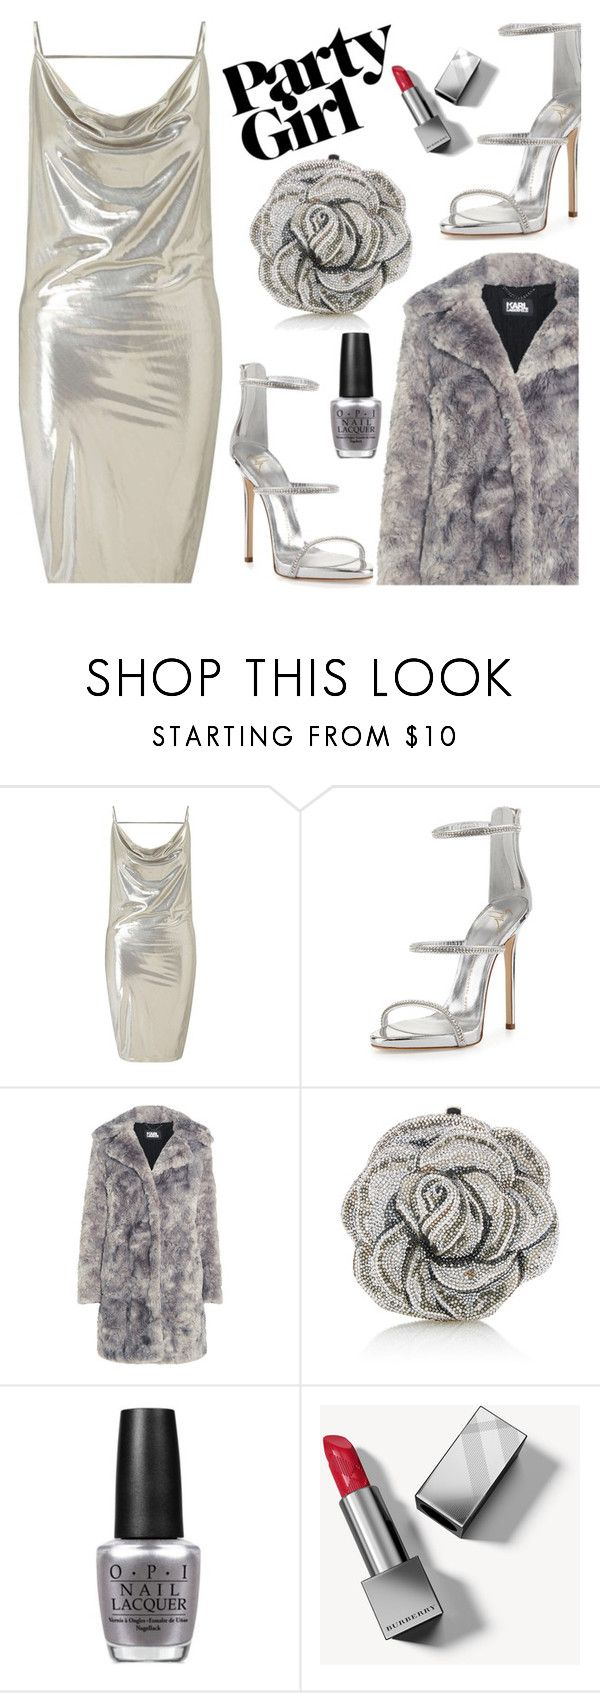 """""""New Year's Eve Party!!!"""" by razone ❤ liked on Polyvore featuring Miss Selfridge, Giuseppe Zanotti, Karl Lagerfeld, Judith Leiber, OPI and Burberry"""